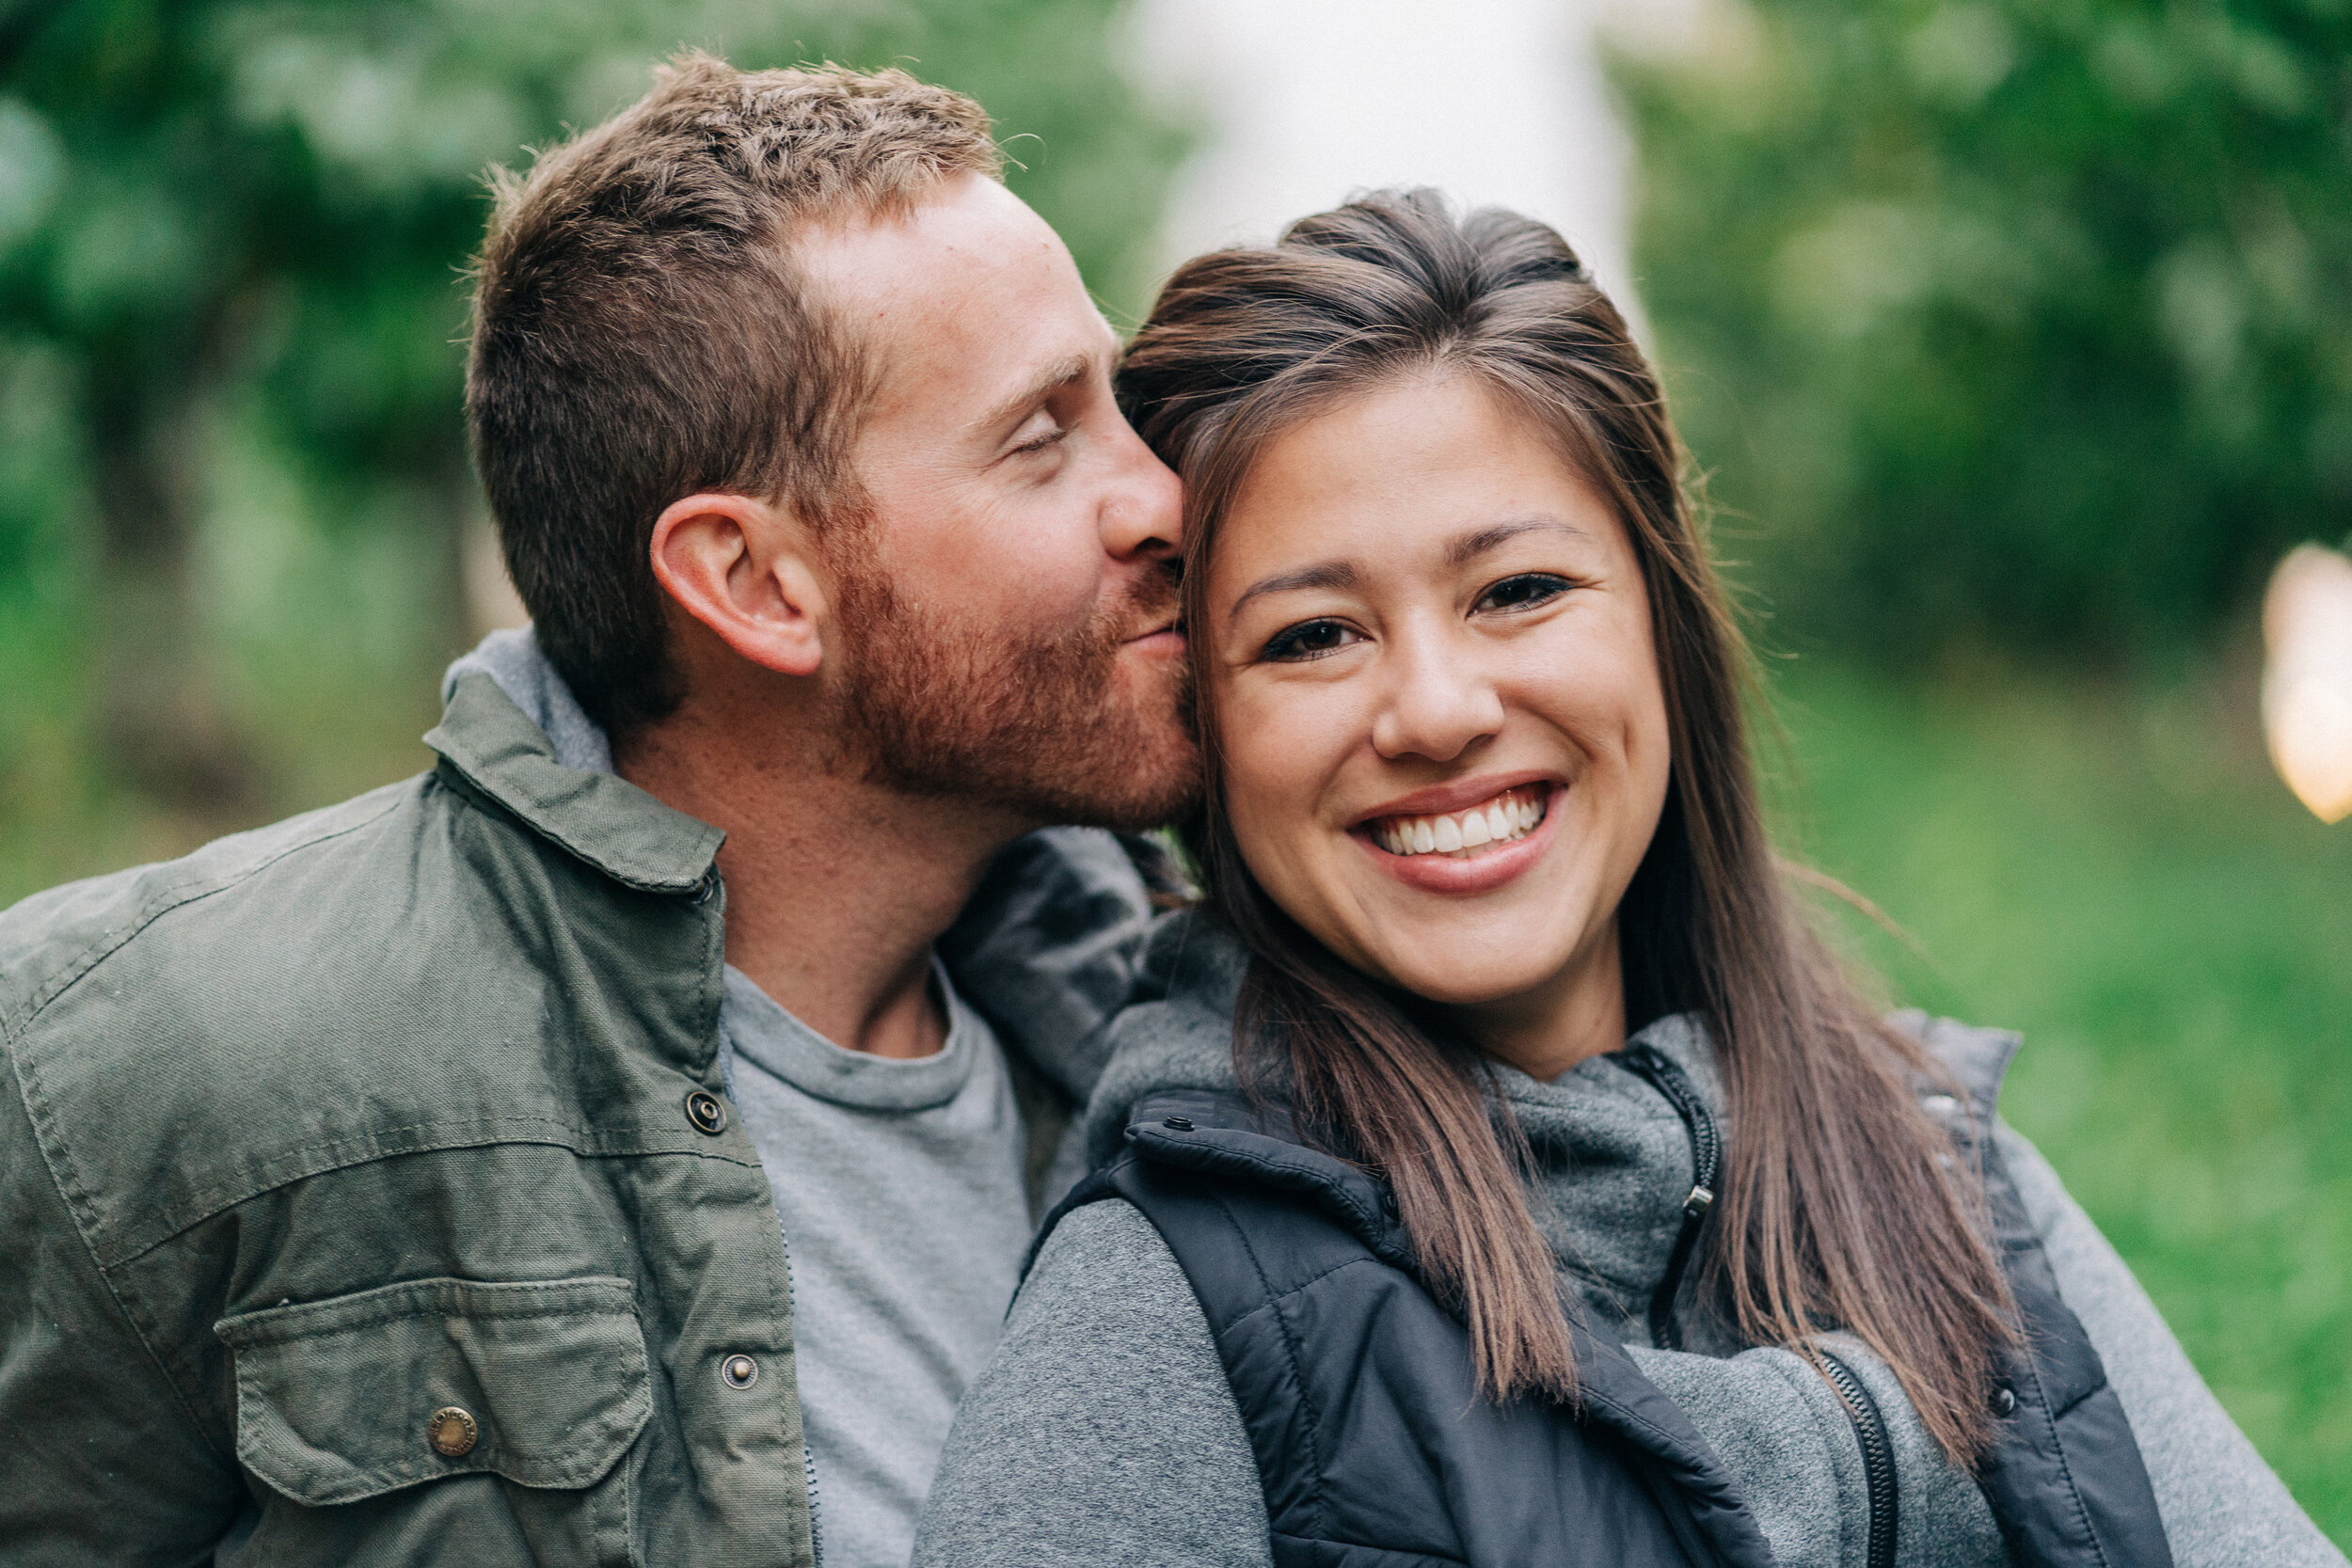 couples photography in orchard in wenatchee washington